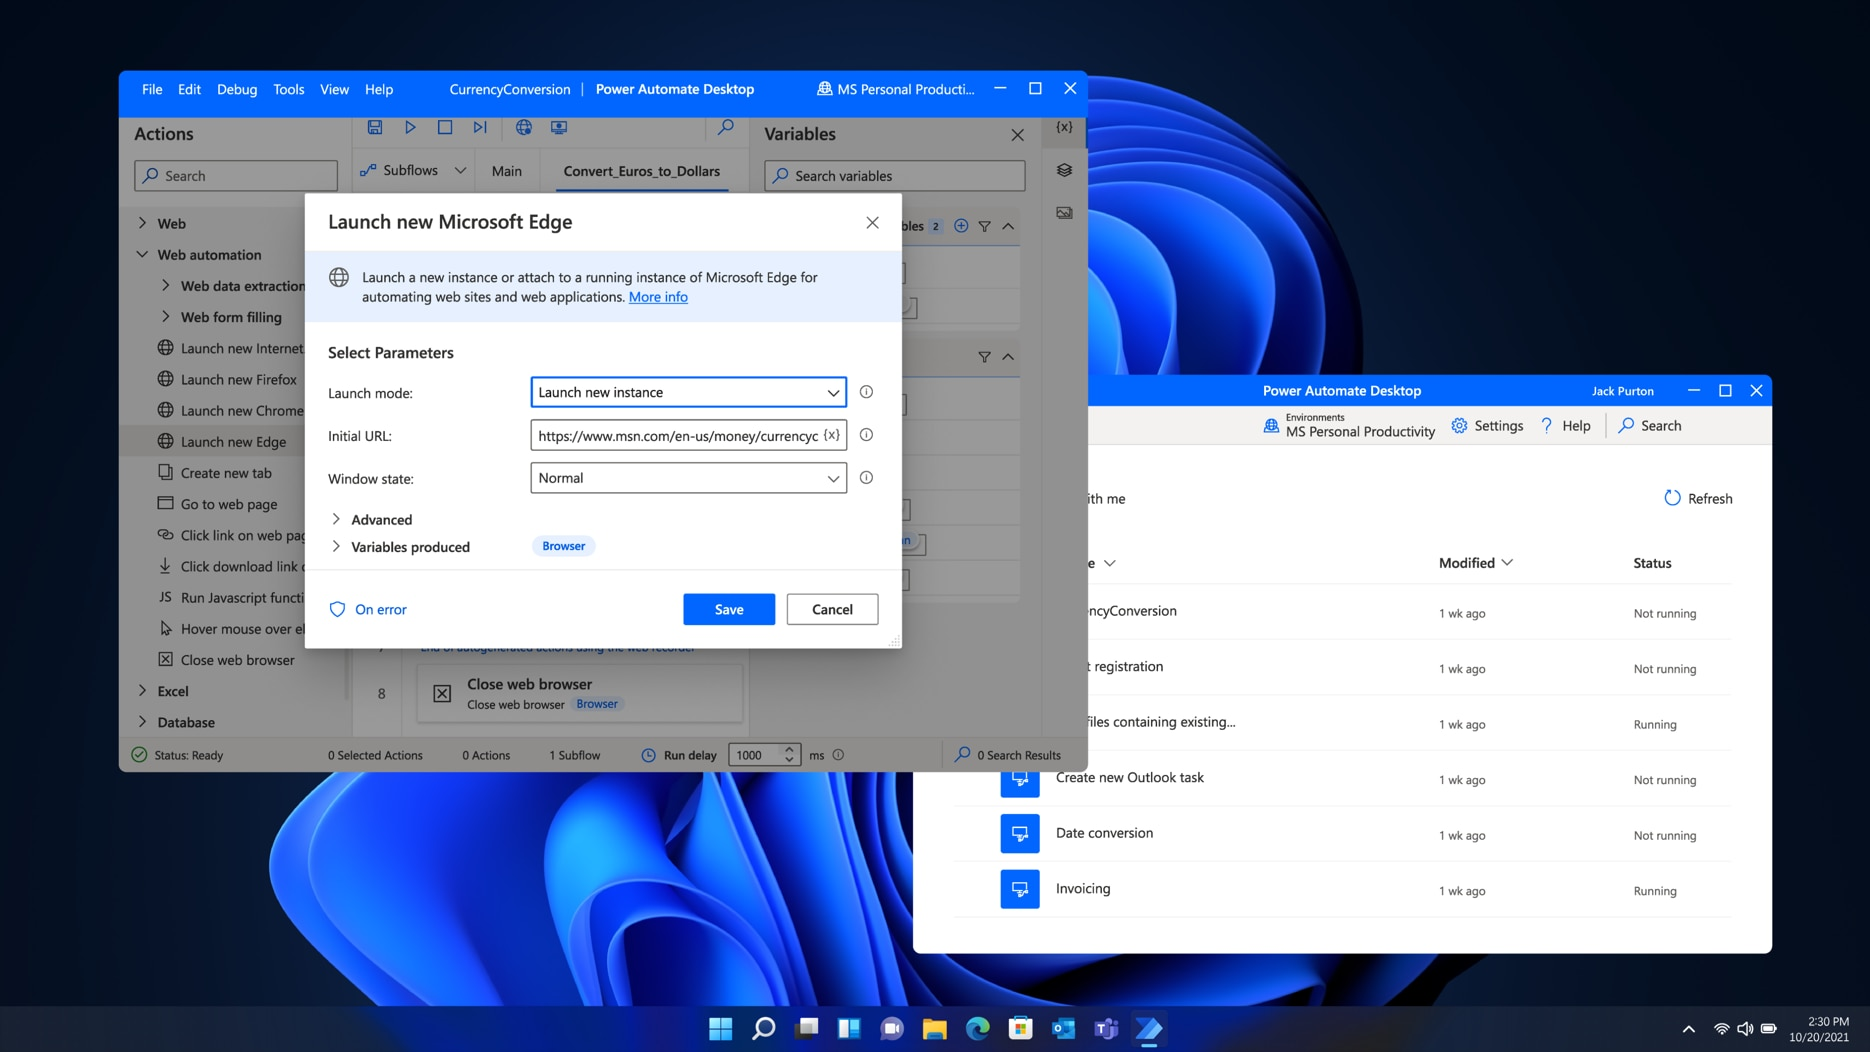 Two windows being run in Windows 11, one showing a new instance of Microsoft Edge being launched and one showing a Power Automate Desktop.